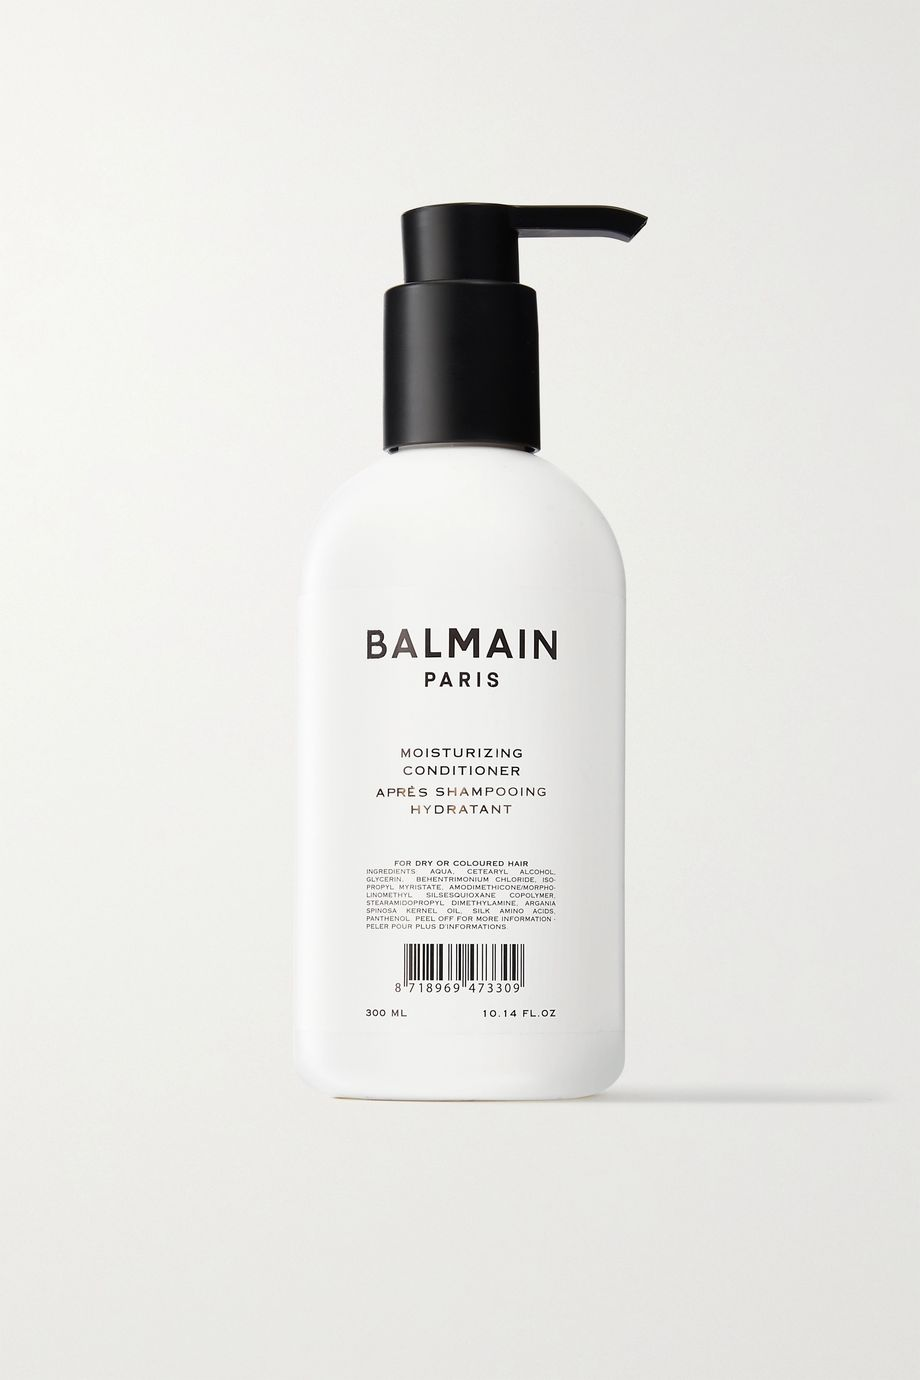 BALMAIN PARIS HAIR COUTURE Moisturizing Conditioner, 300ml